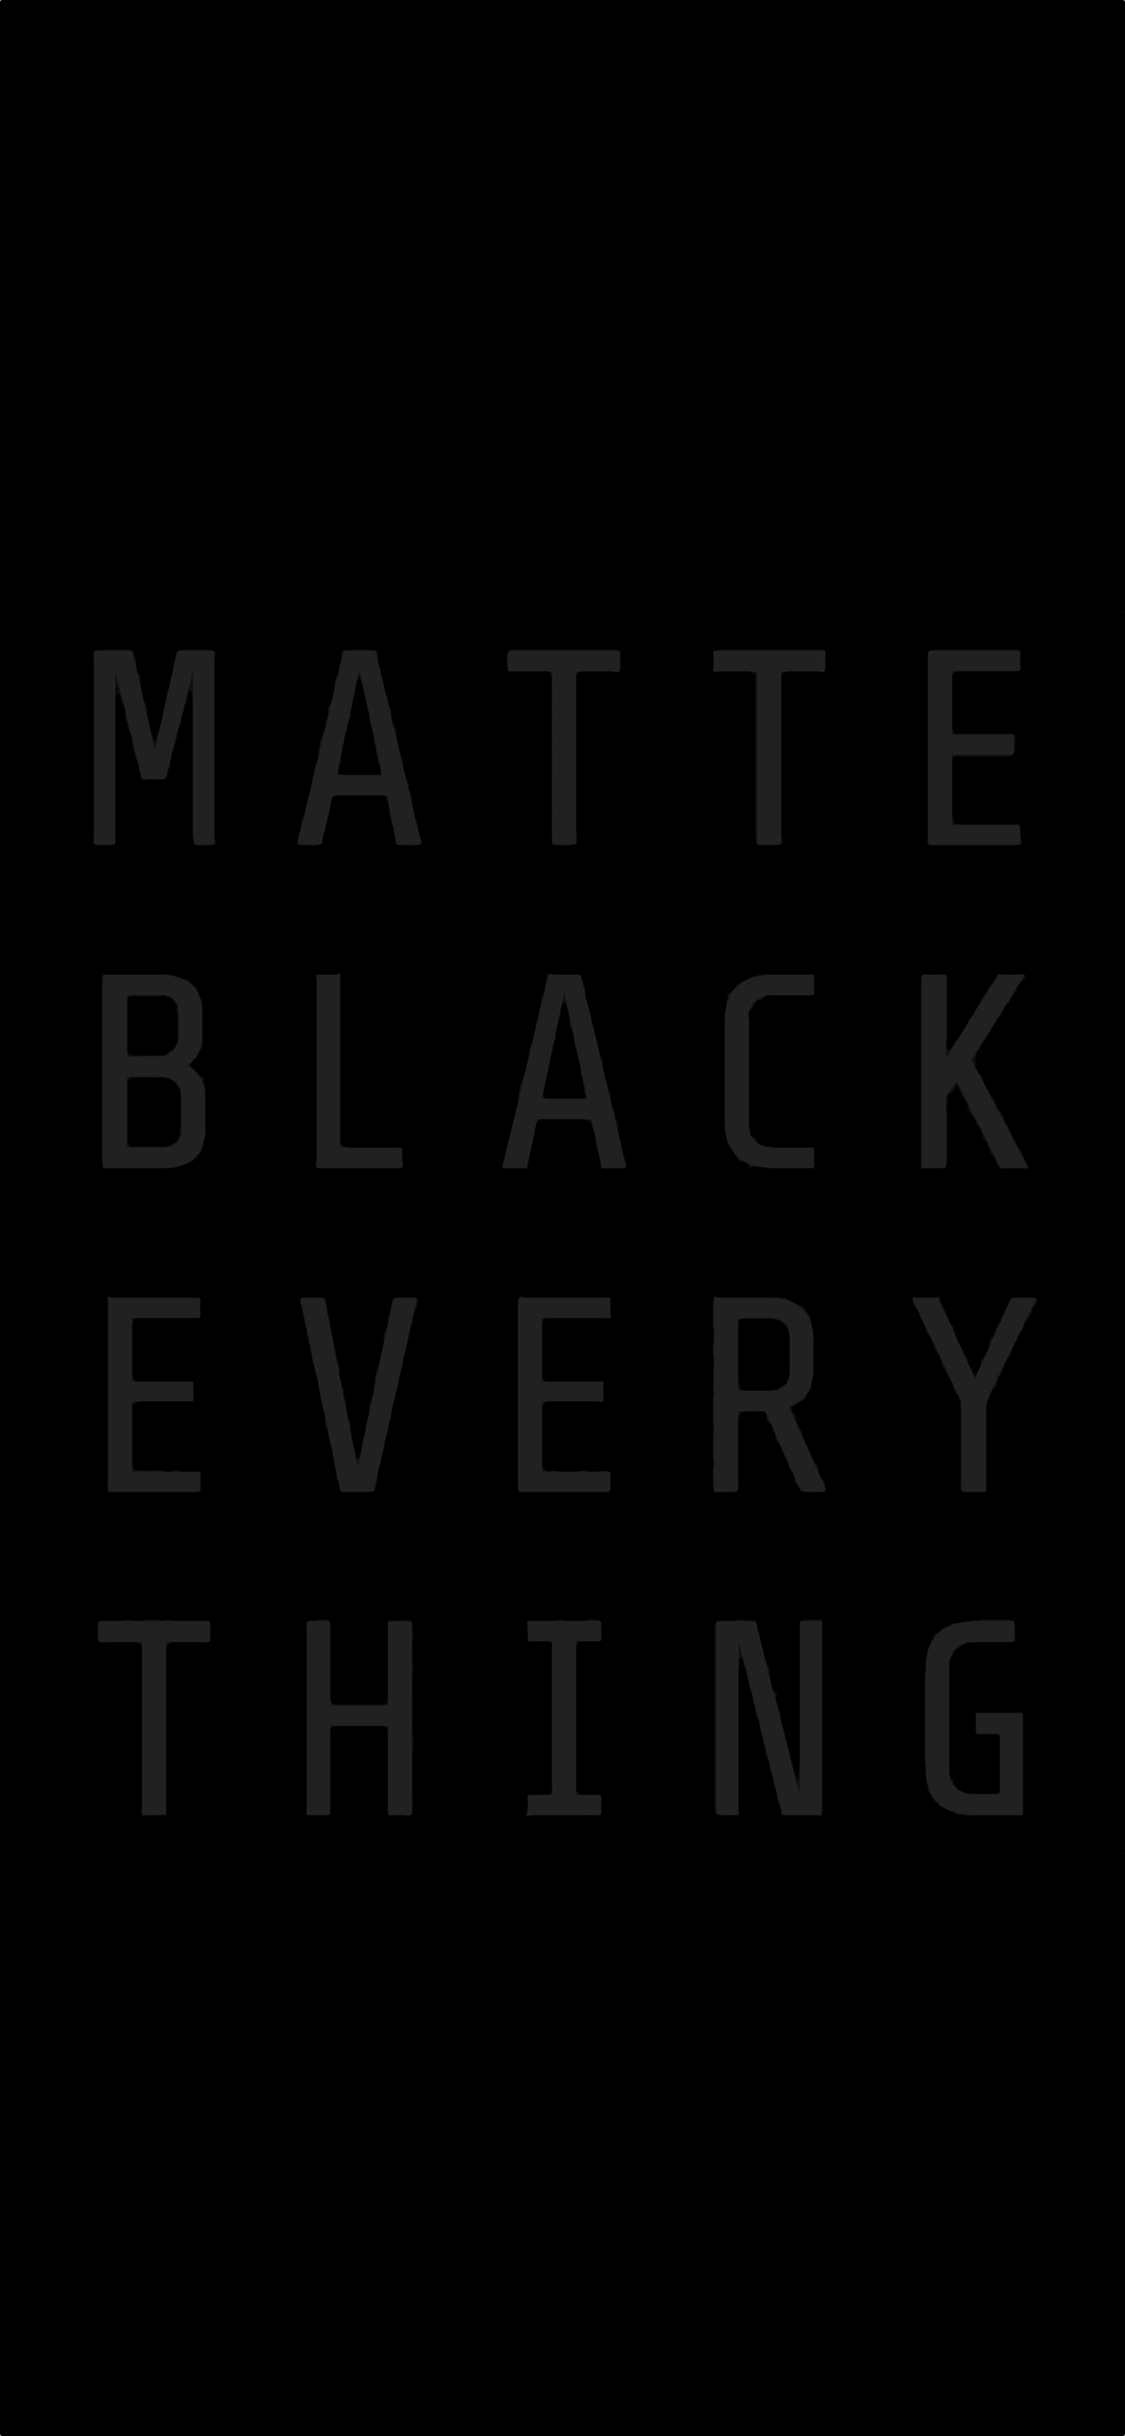 List of Cool Matte Black Wallpaper Iphone for iPhone X Today